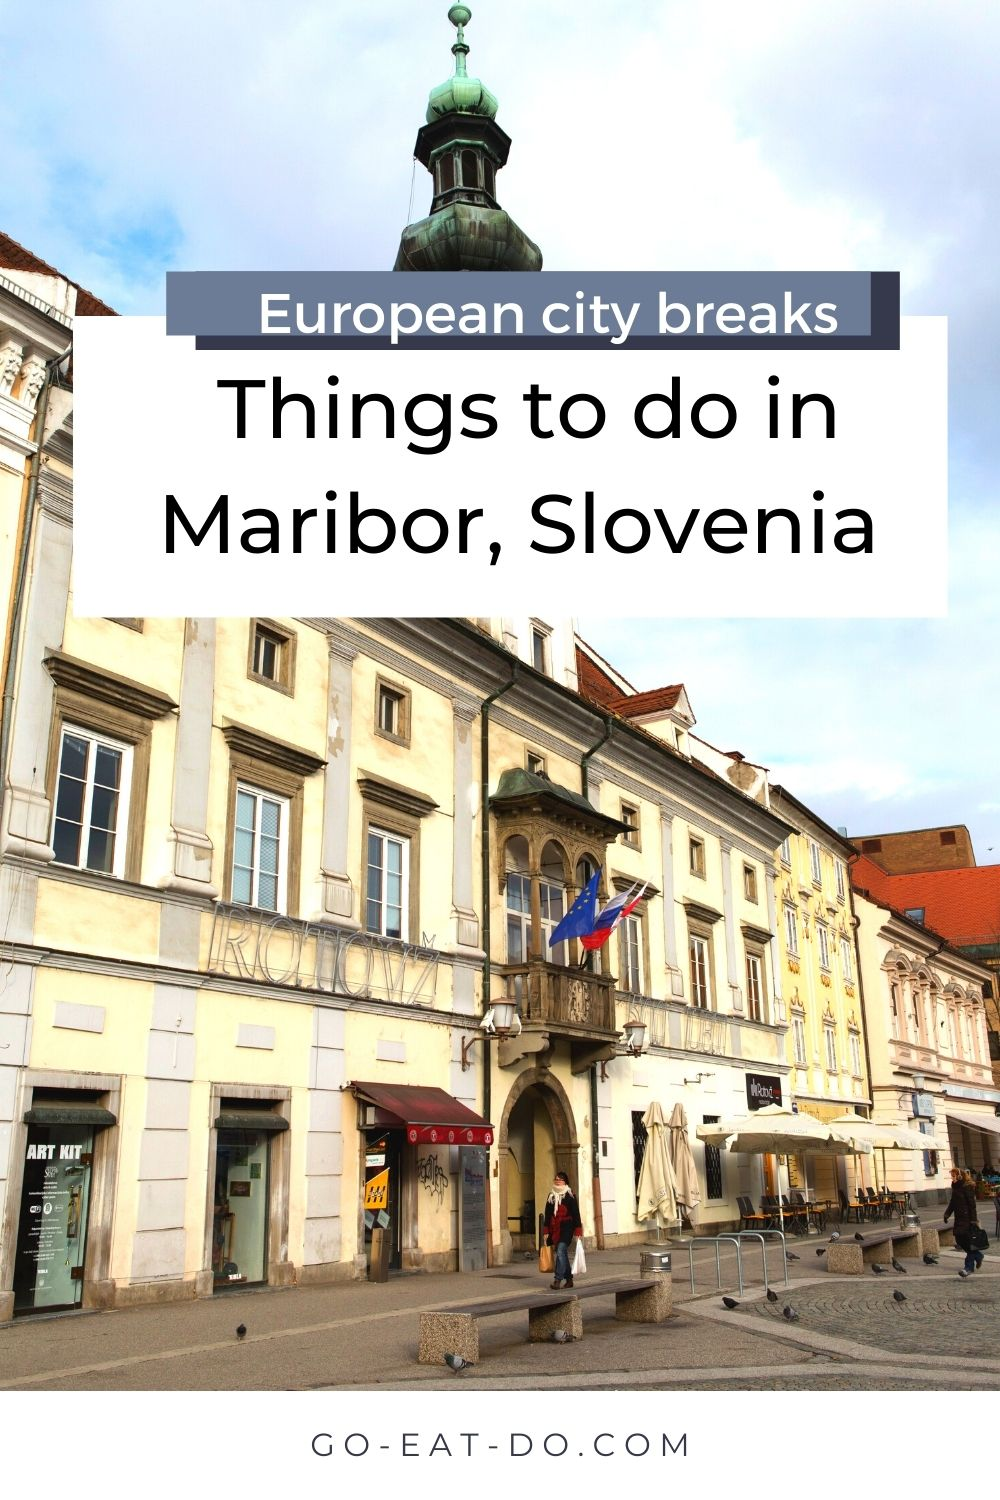 Pinterest pin for Go Eat Do's guide providing an overview of things to do in Maribor, Slovenia.